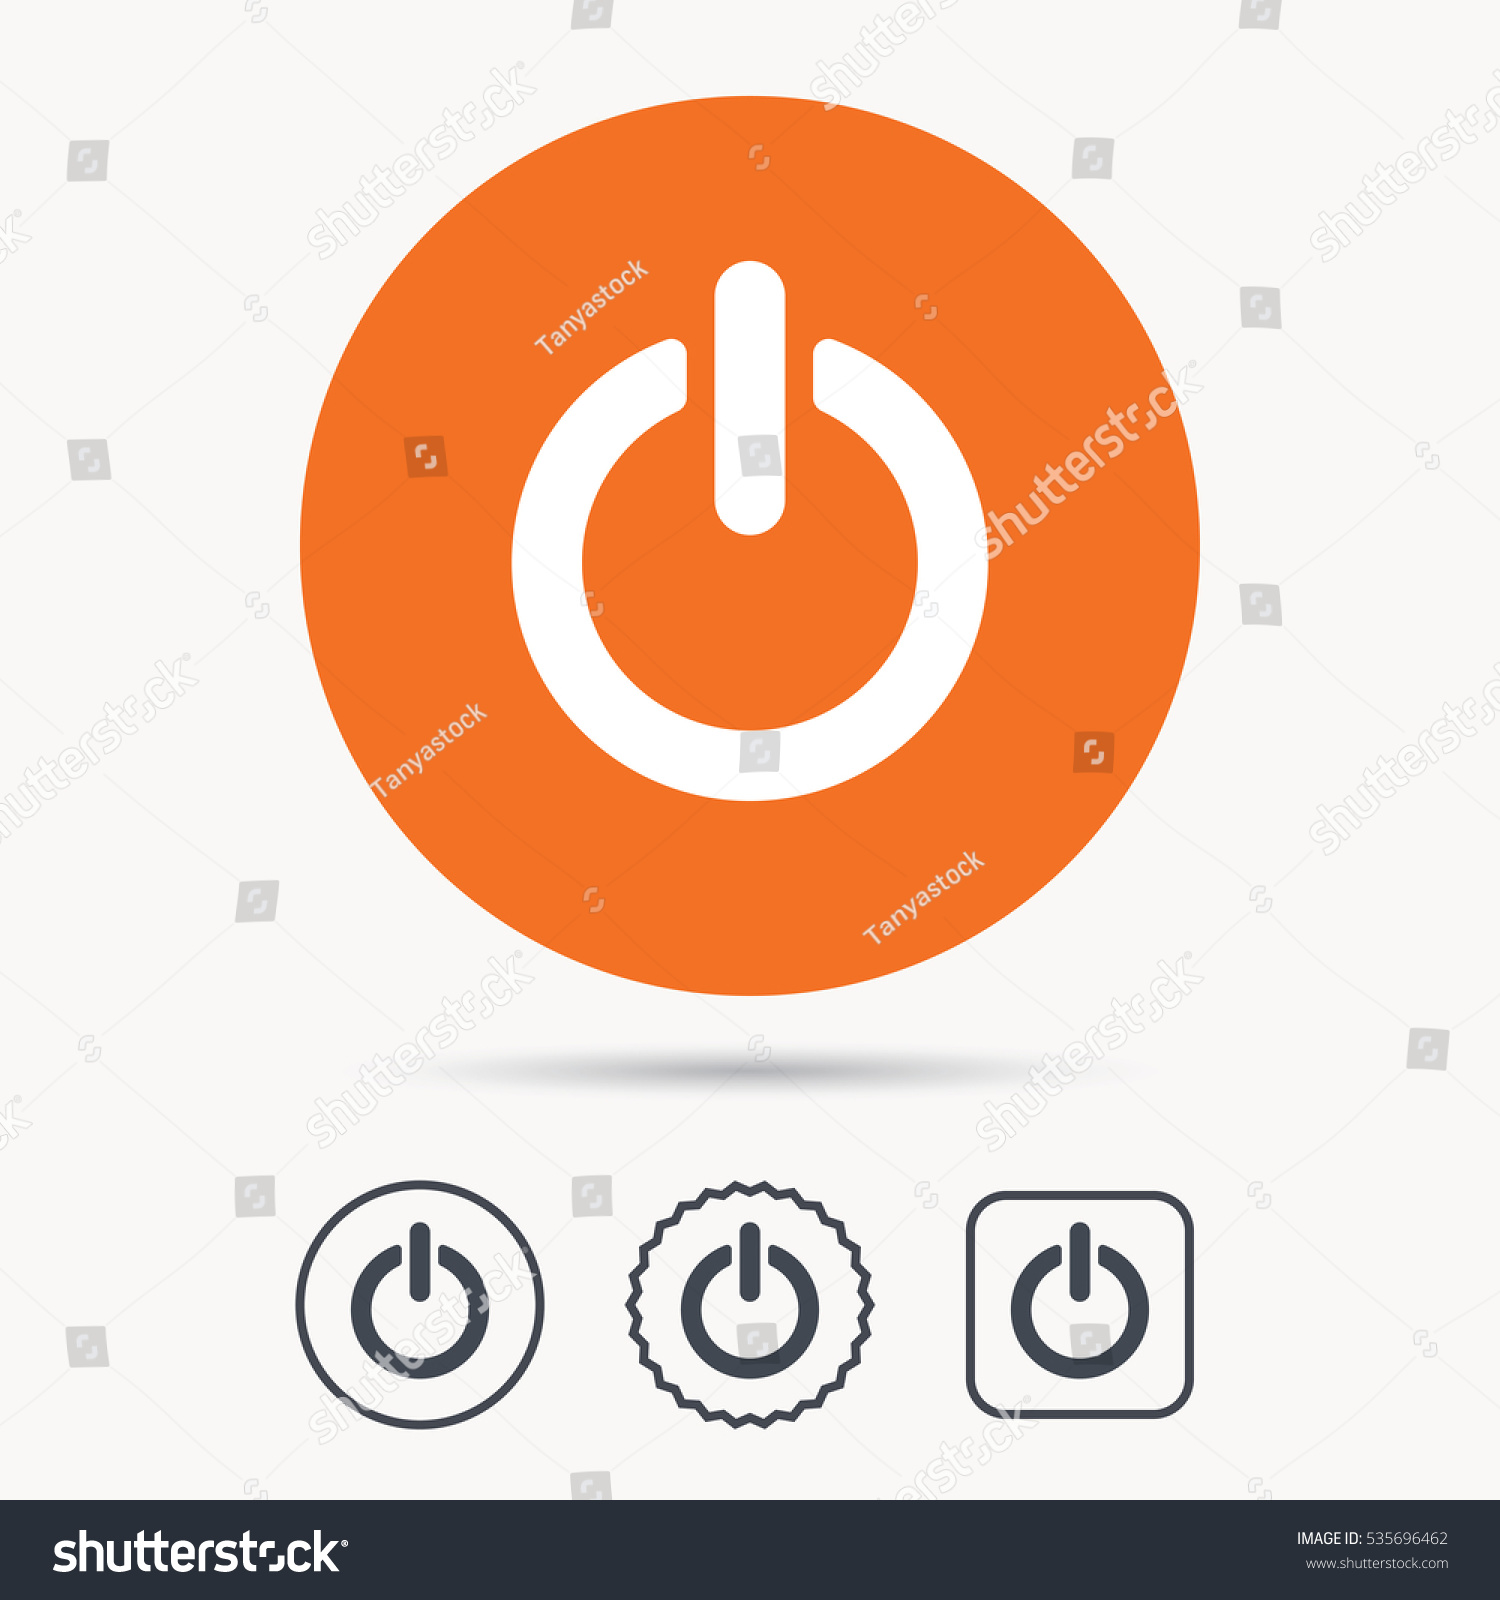 On Off Power Icon Energy Switch Stock Vector Royalty Free Symbol Orange Circle Button With Web